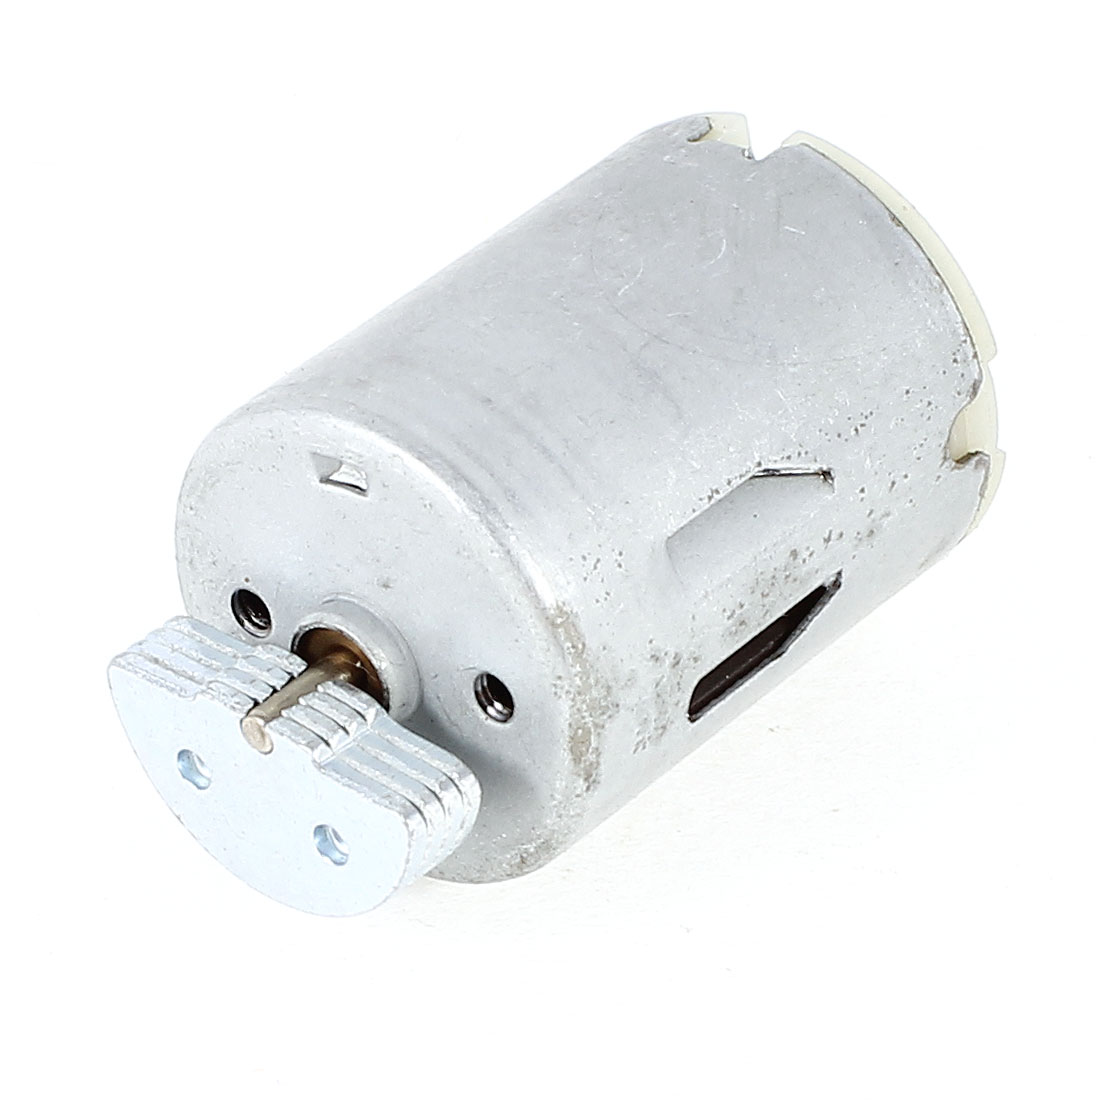 DC 12V 3800RPM Rotary Speed 24mm Diameter Electric Vibrating Motor Replacement